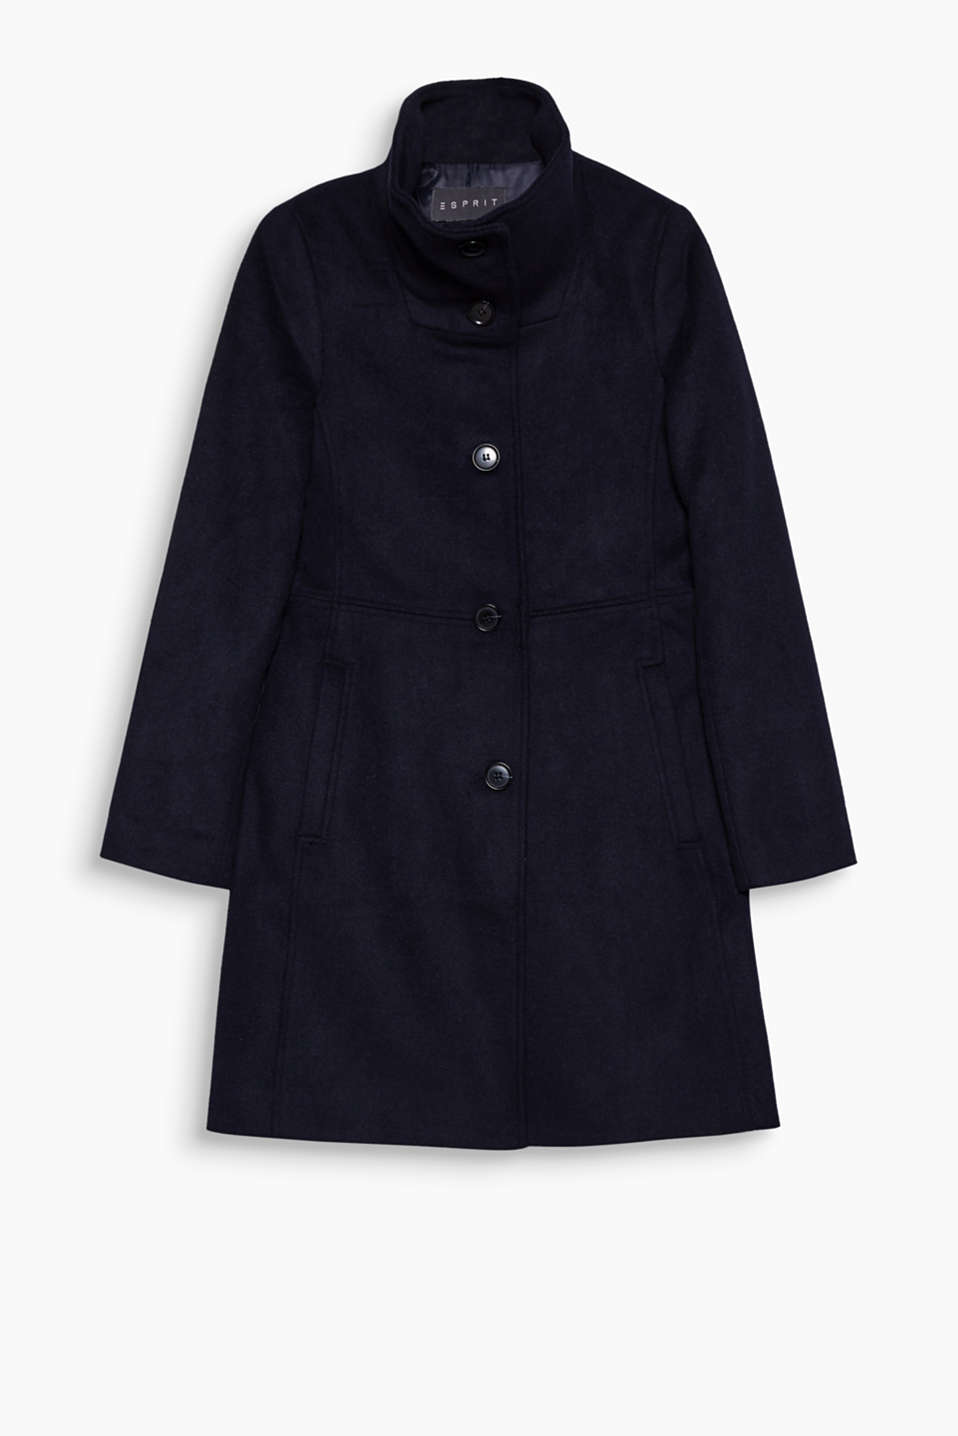 You can create a variety of different looks with this timelessly classic coat made of soft blended wool